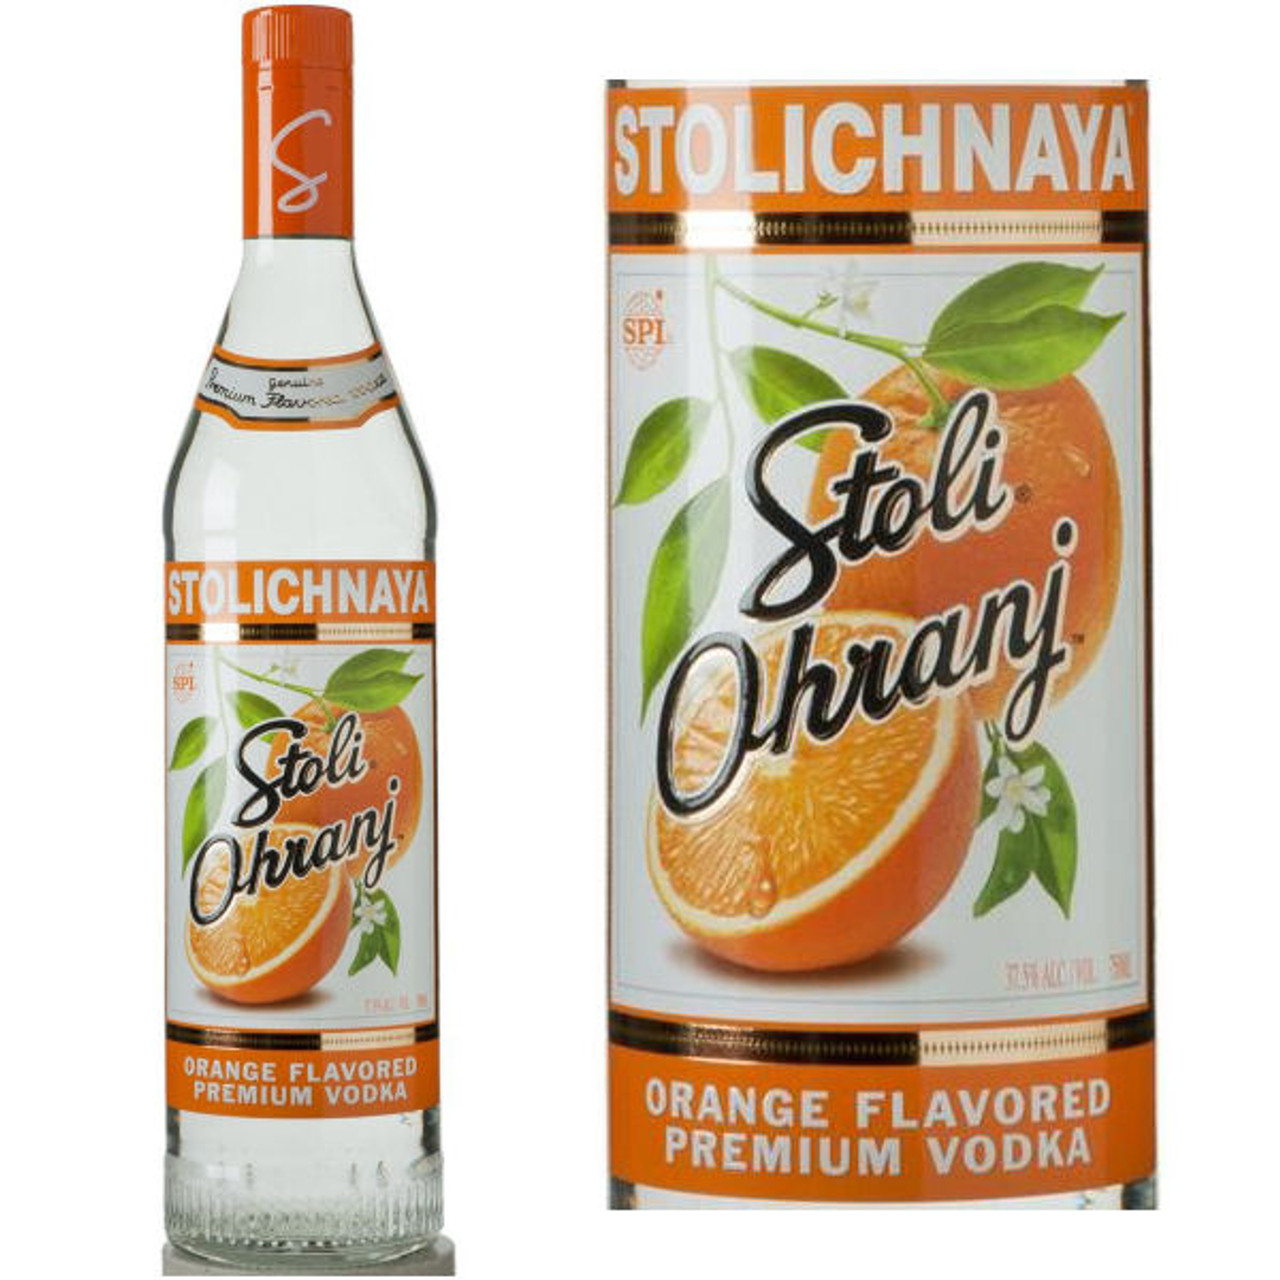 Stolichnaya Ohranj Flavored Russian Vodka 750ml